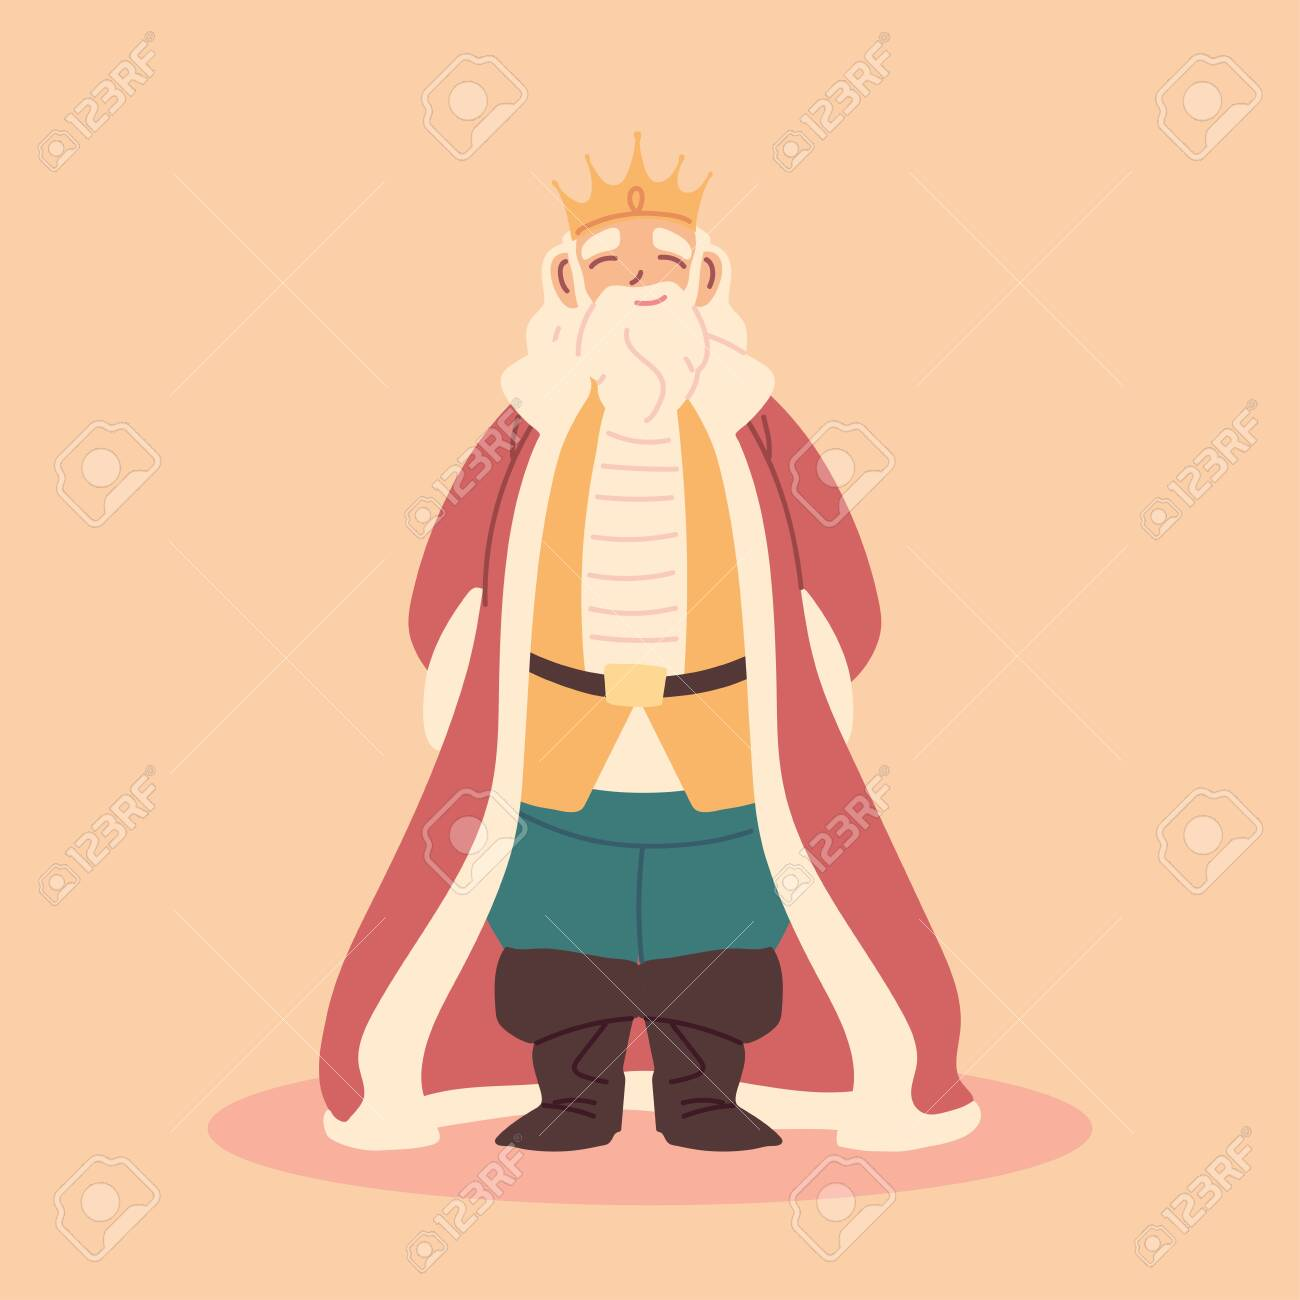 King Fat Man With Crown And Royal Robes Monarch Vector Illustration Royalty Free Cliparts Vectors And Stock Illustration Image 153963673